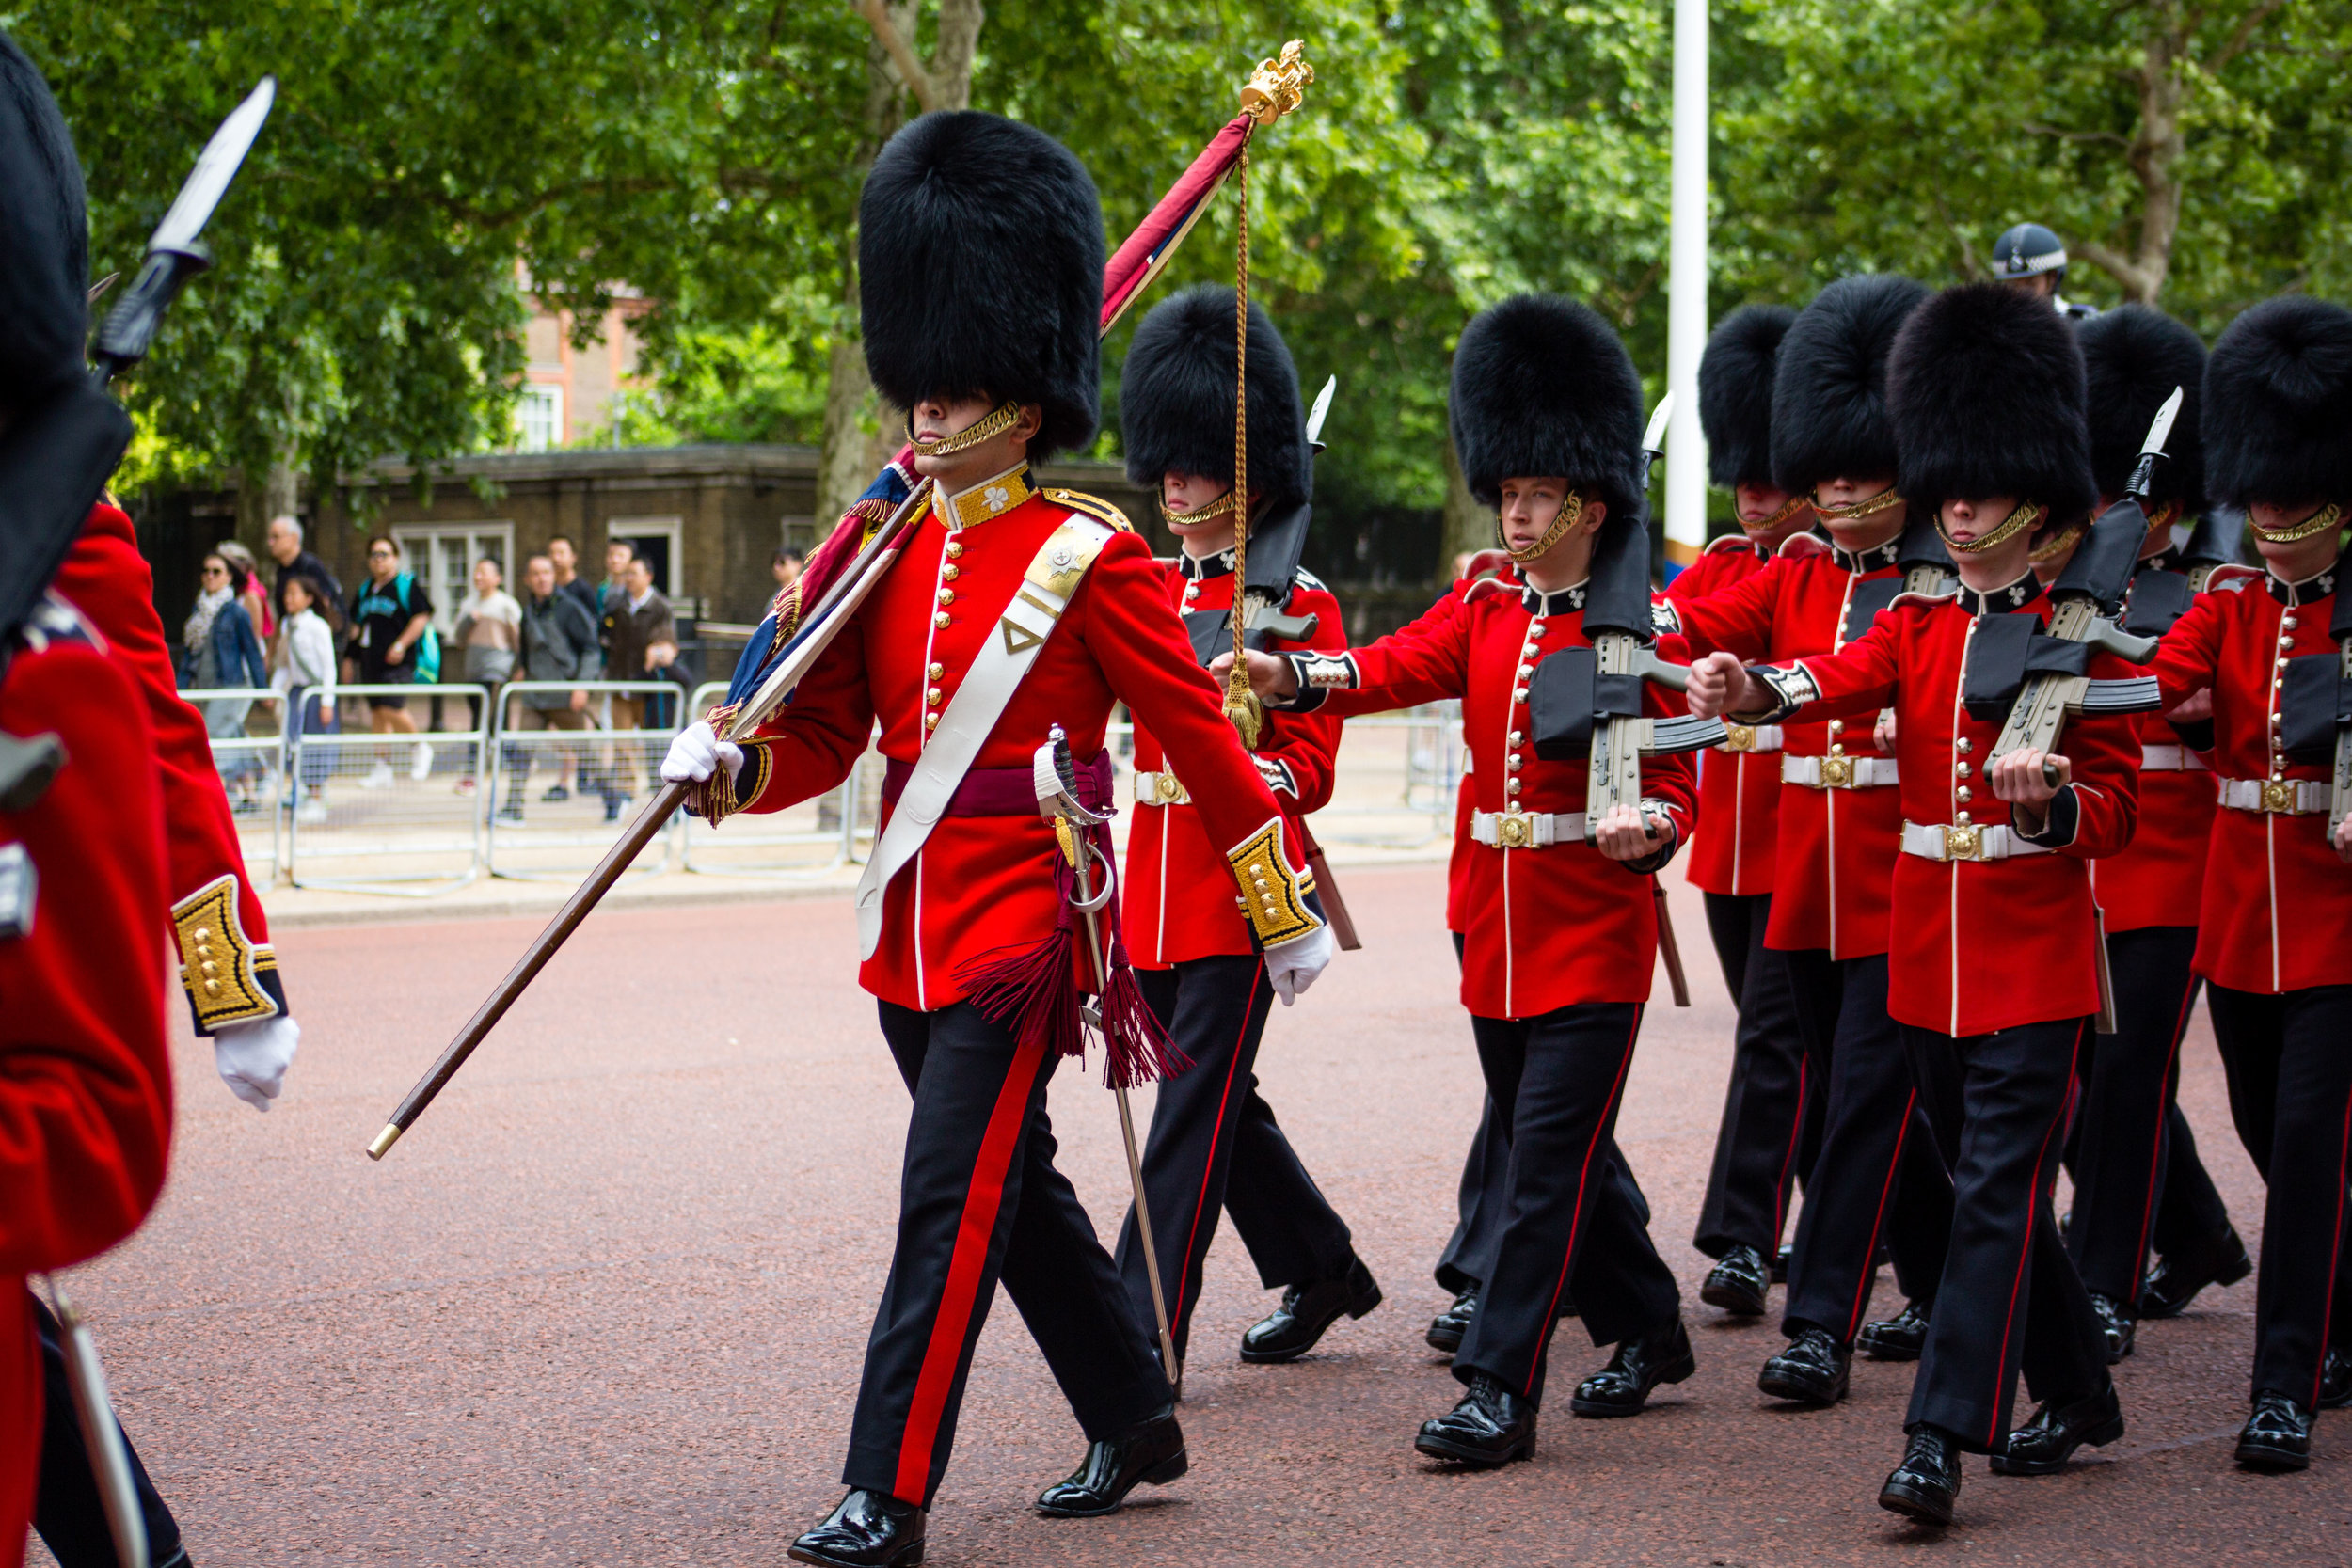 Part of the Household Cavalry(?)